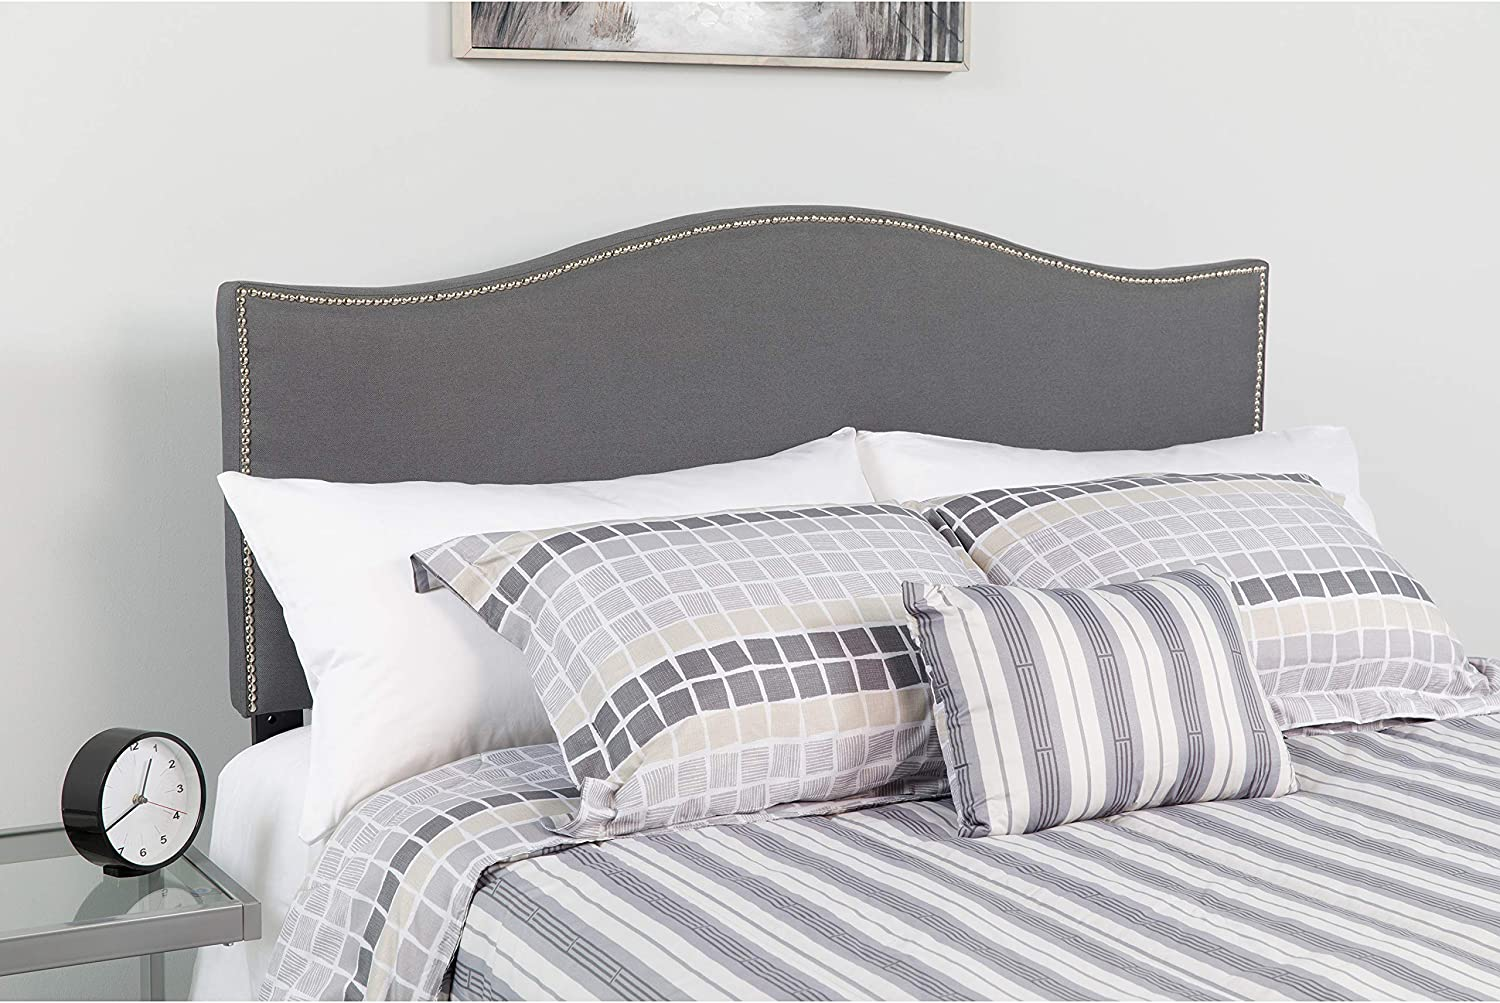 Flash Furniture Lexington Upholstered King Size Headboard with Accent Nail Trim in Dark Gray Fabric